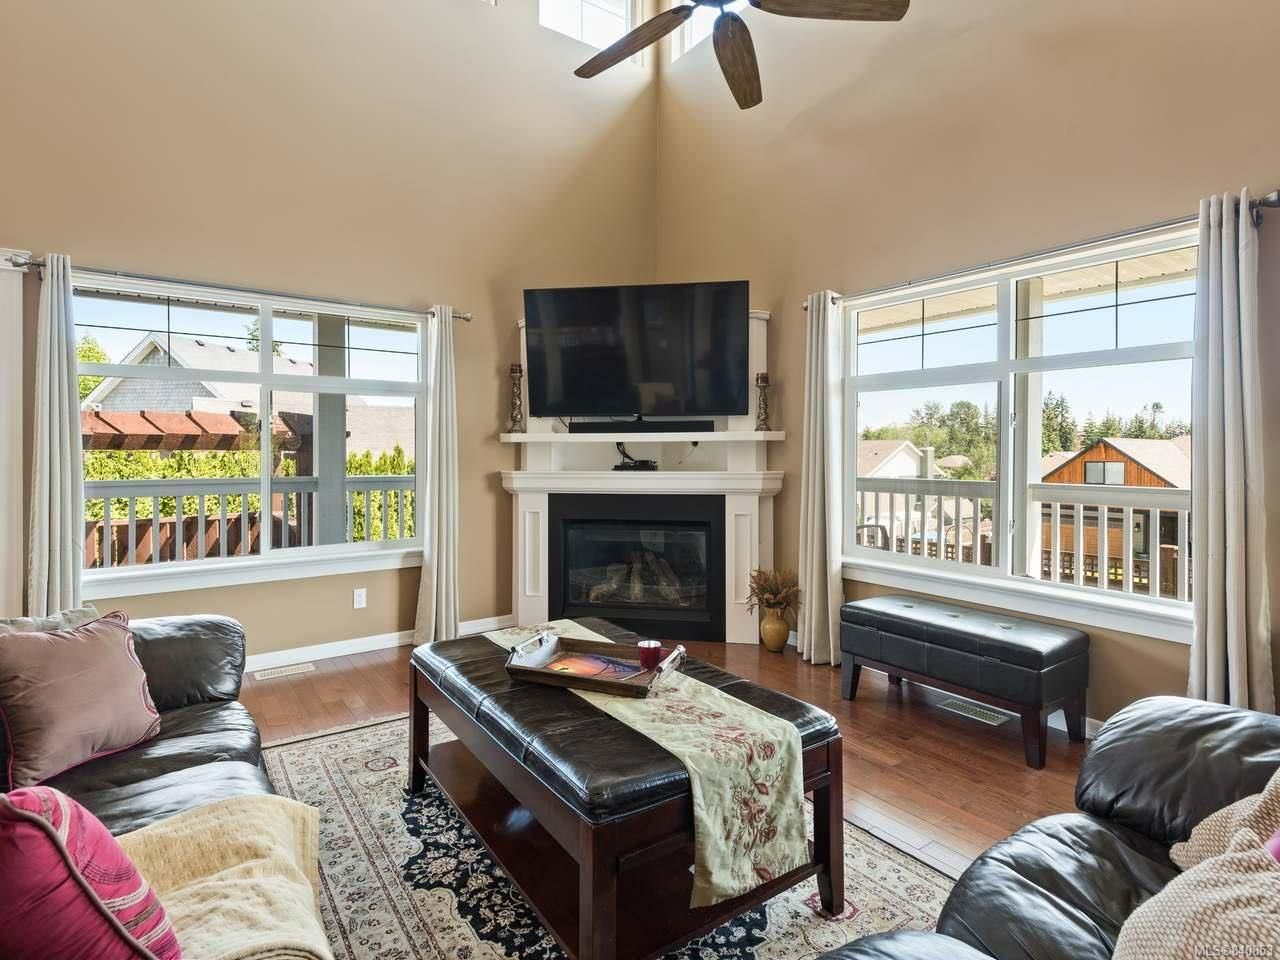 Photo 17: Photos: 206 Marie Pl in CAMPBELL RIVER: CR Willow Point House for sale (Campbell River)  : MLS®# 840853